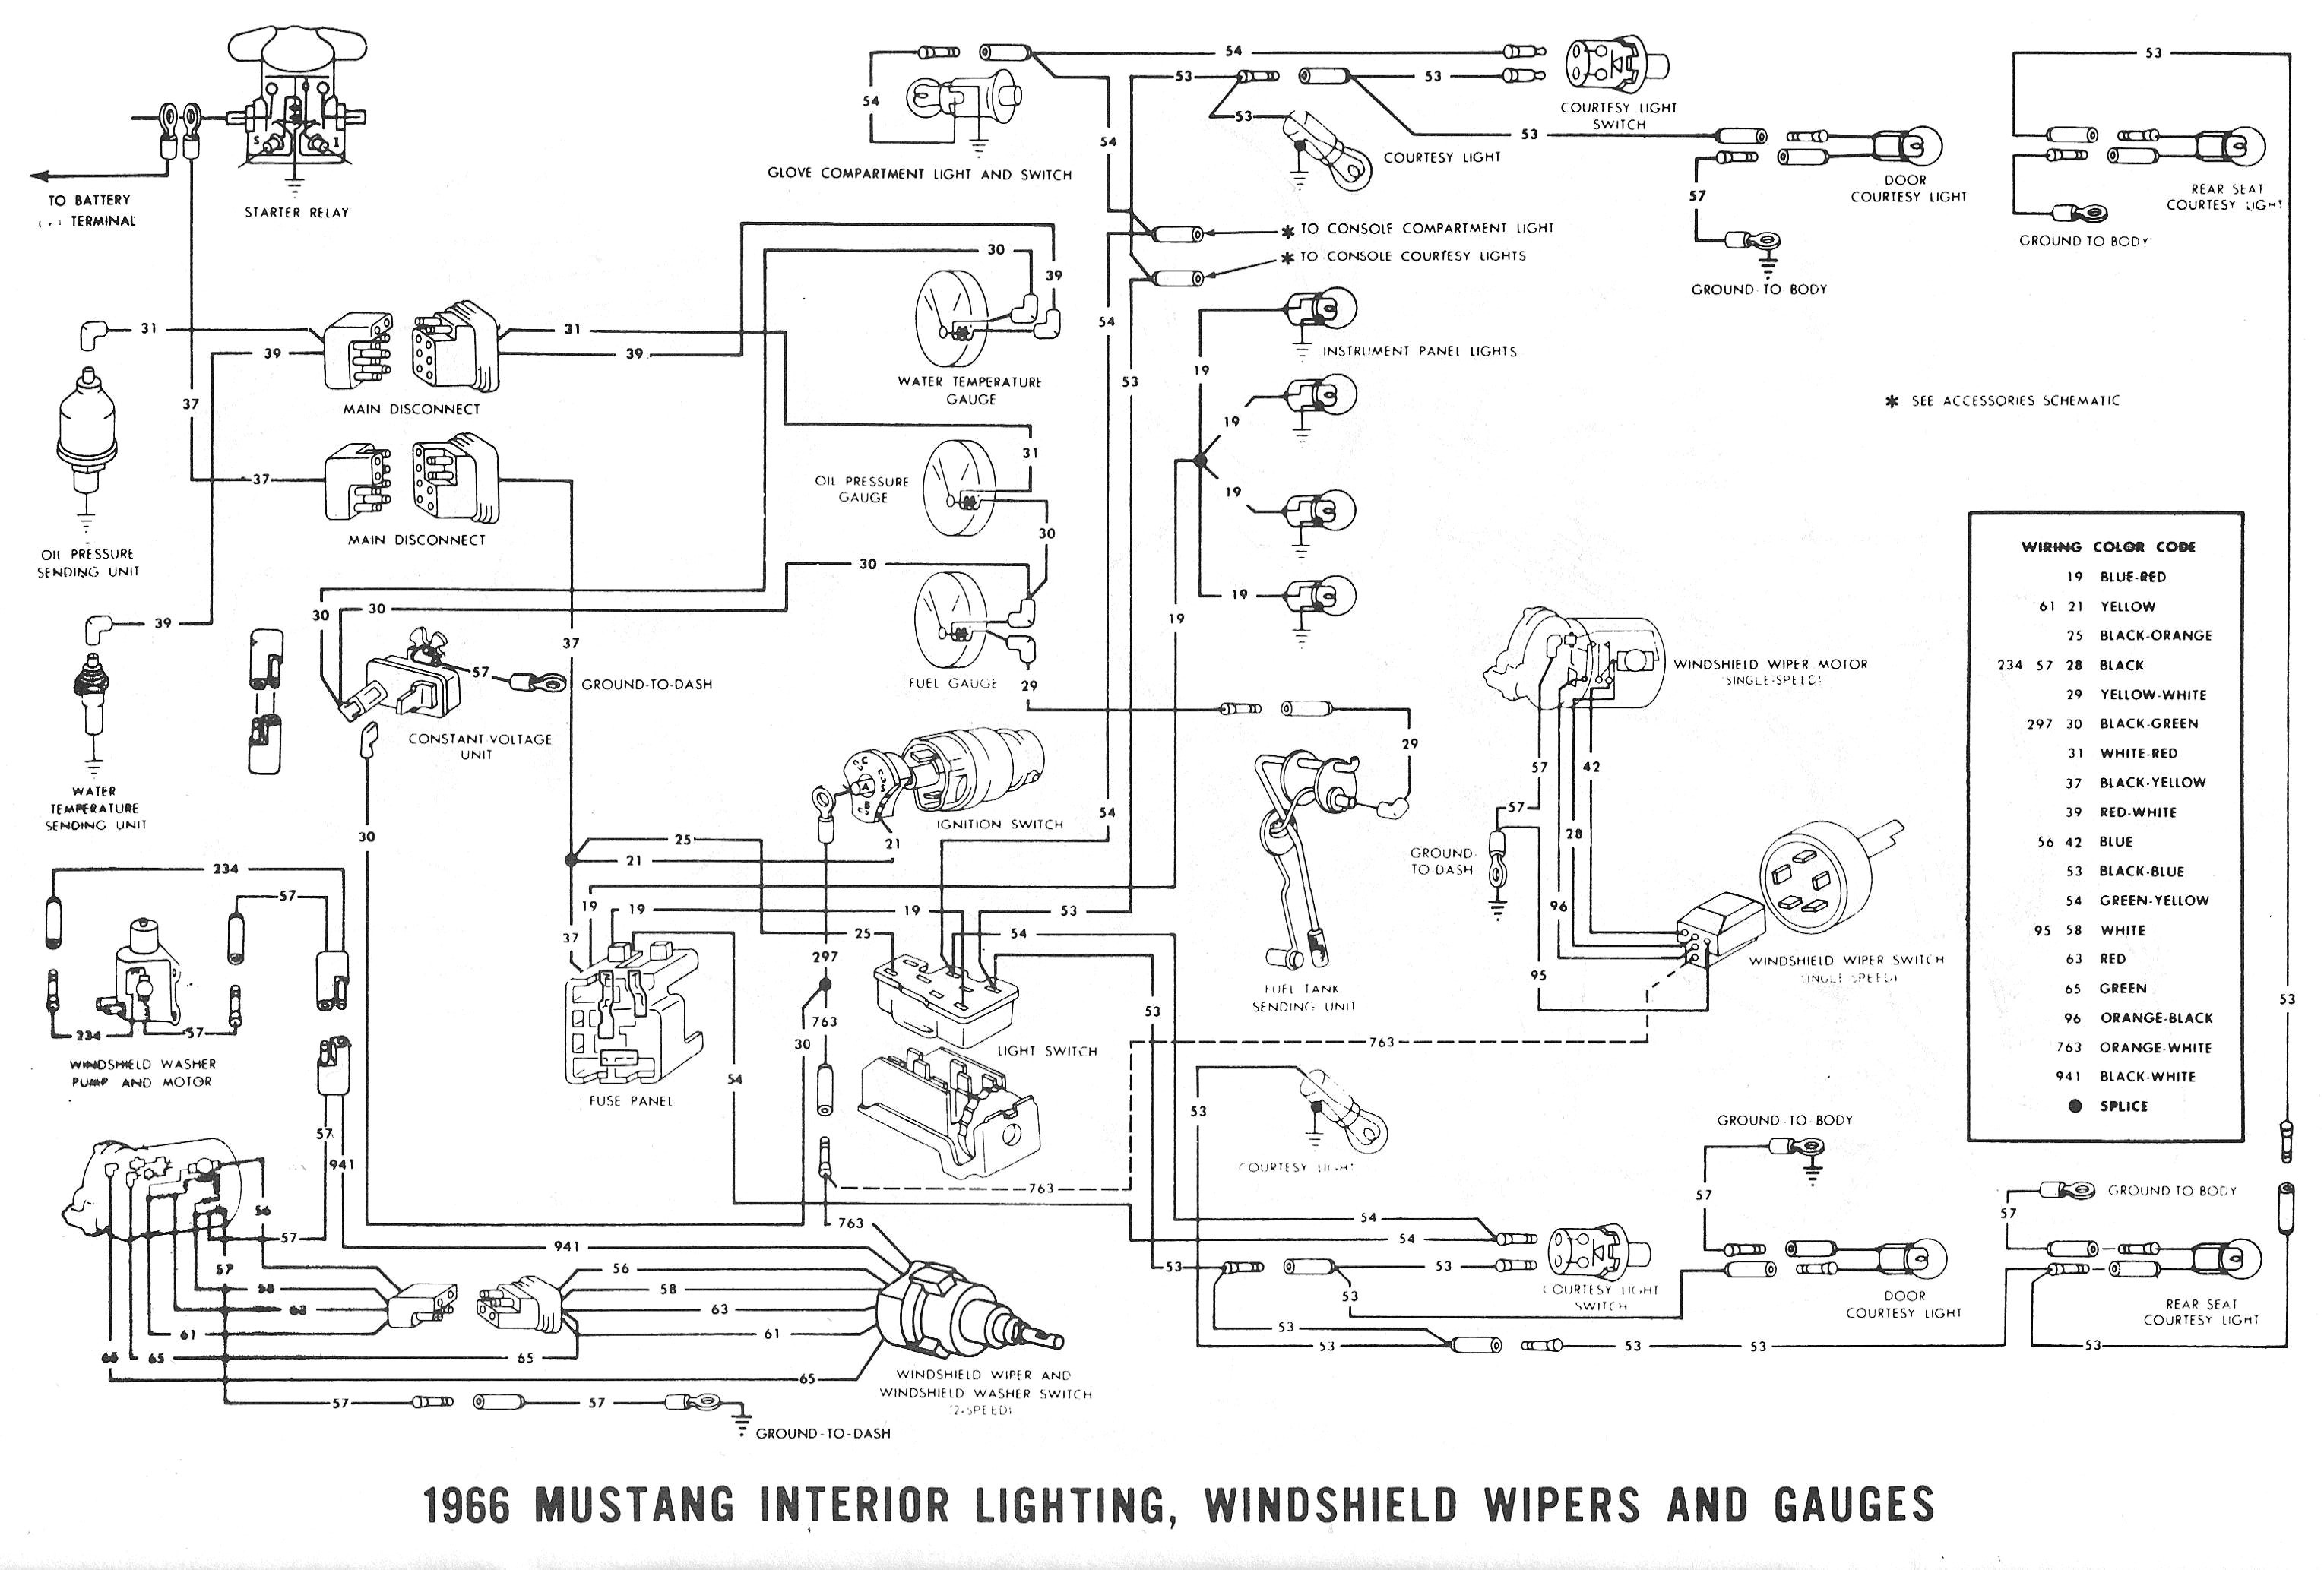 1966 mustang ammeter wiring additionally trans am wiring diagram rh 144 202 61 13  66 mustang ammeter wiring diagram